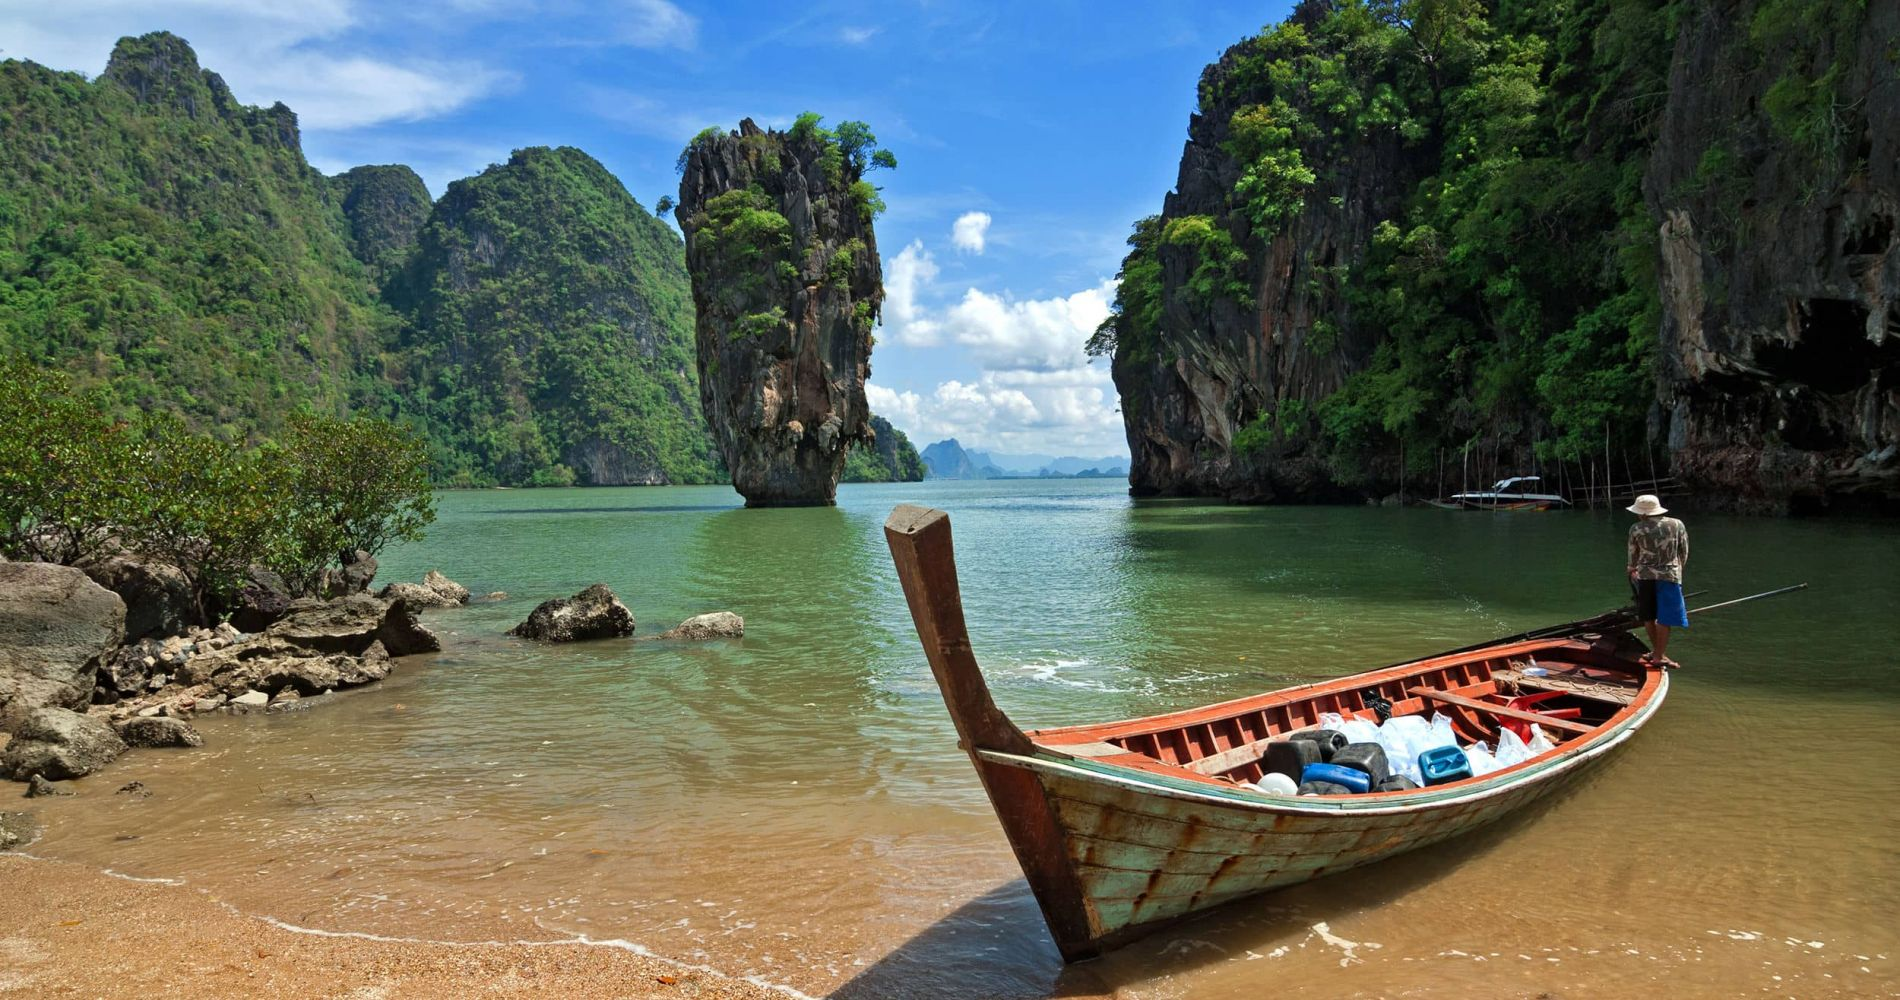 James Bond Island Sightseeing Experience for Two in Thailand